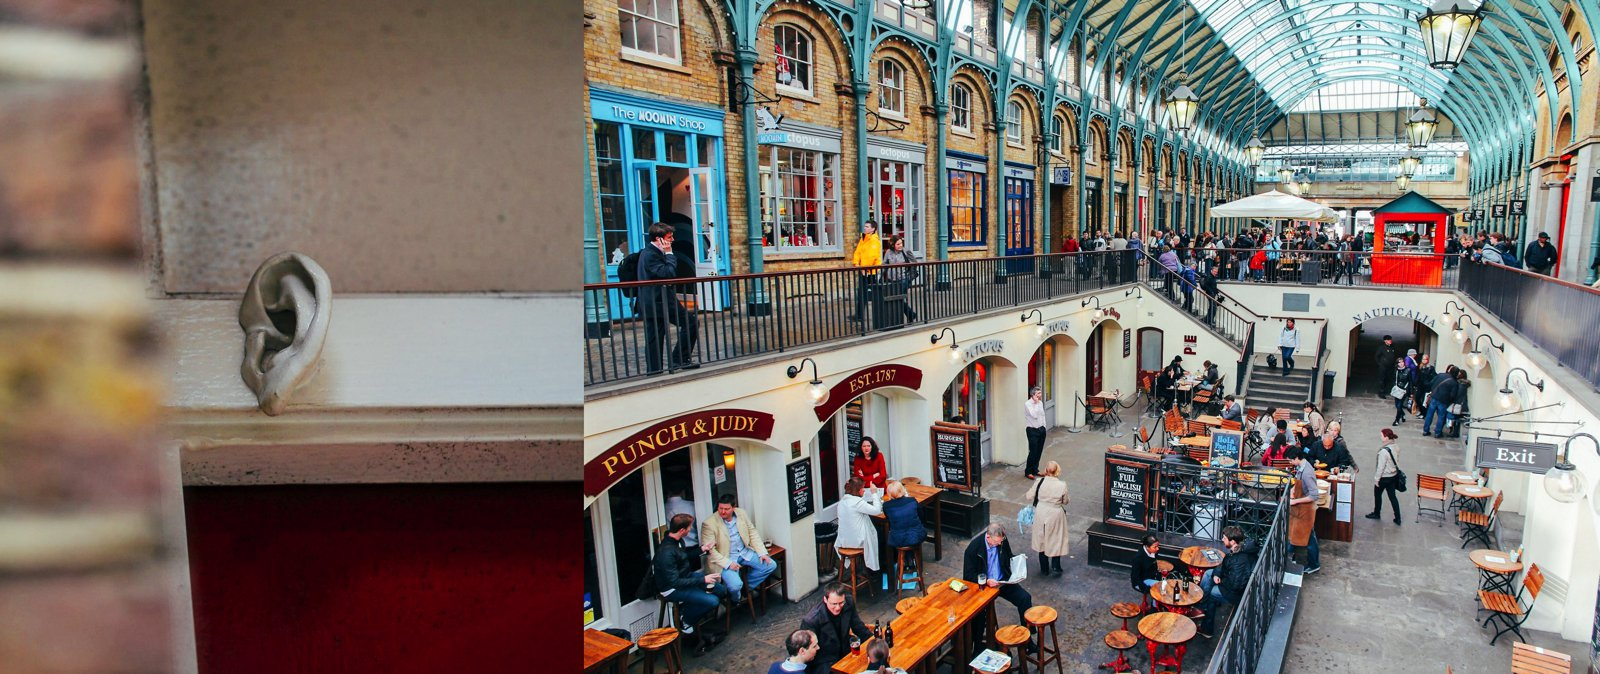 15 Amazing Secret Spots You Have To See In London! (7)